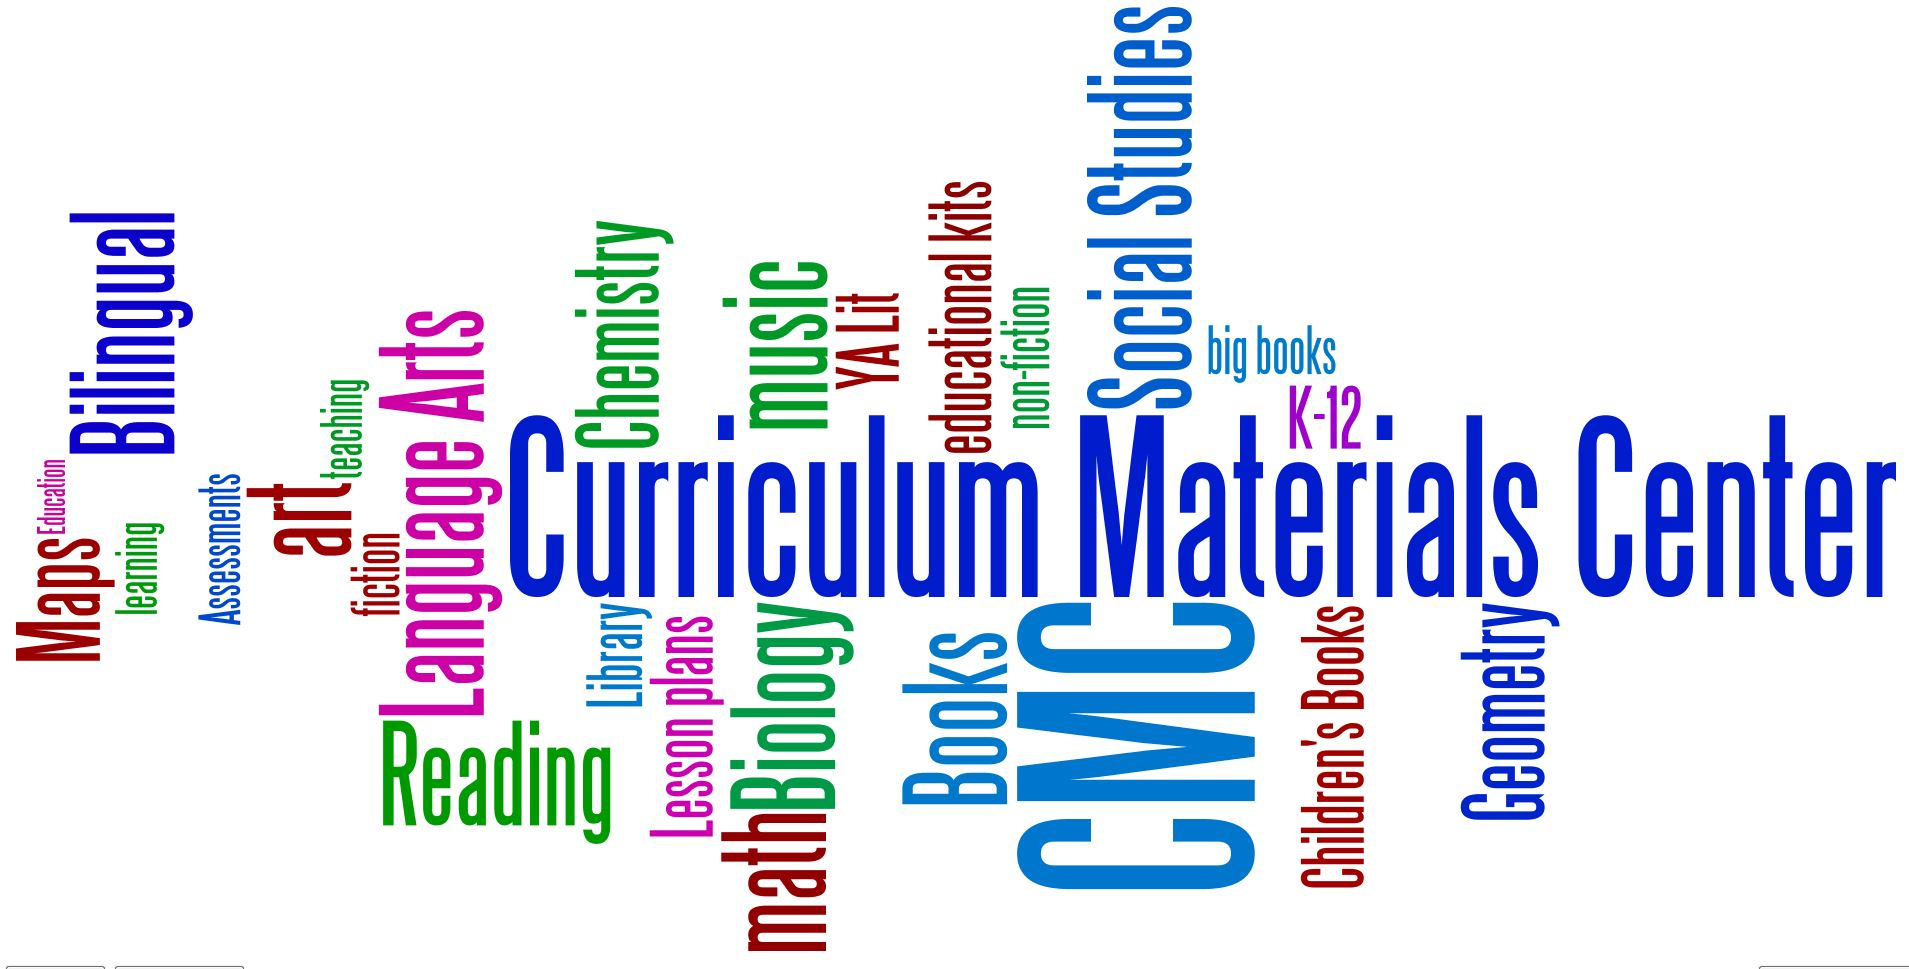 CMC Wordle Image